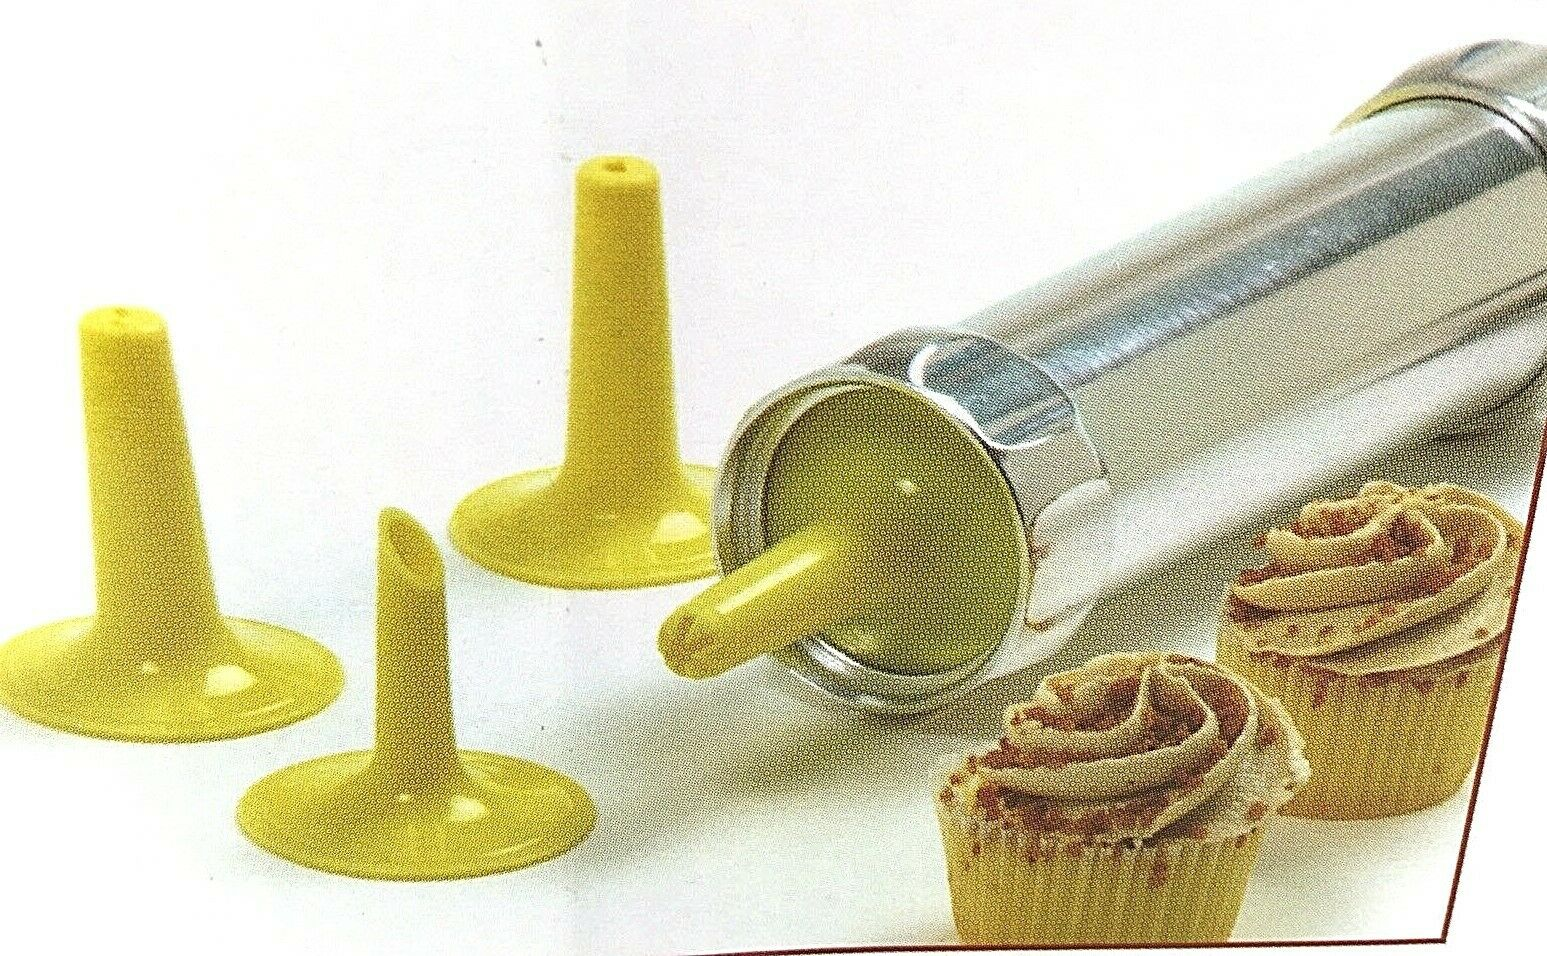 Norpro Cookie/Icing Press Gun Deluxe Set with 20 Dies and 4